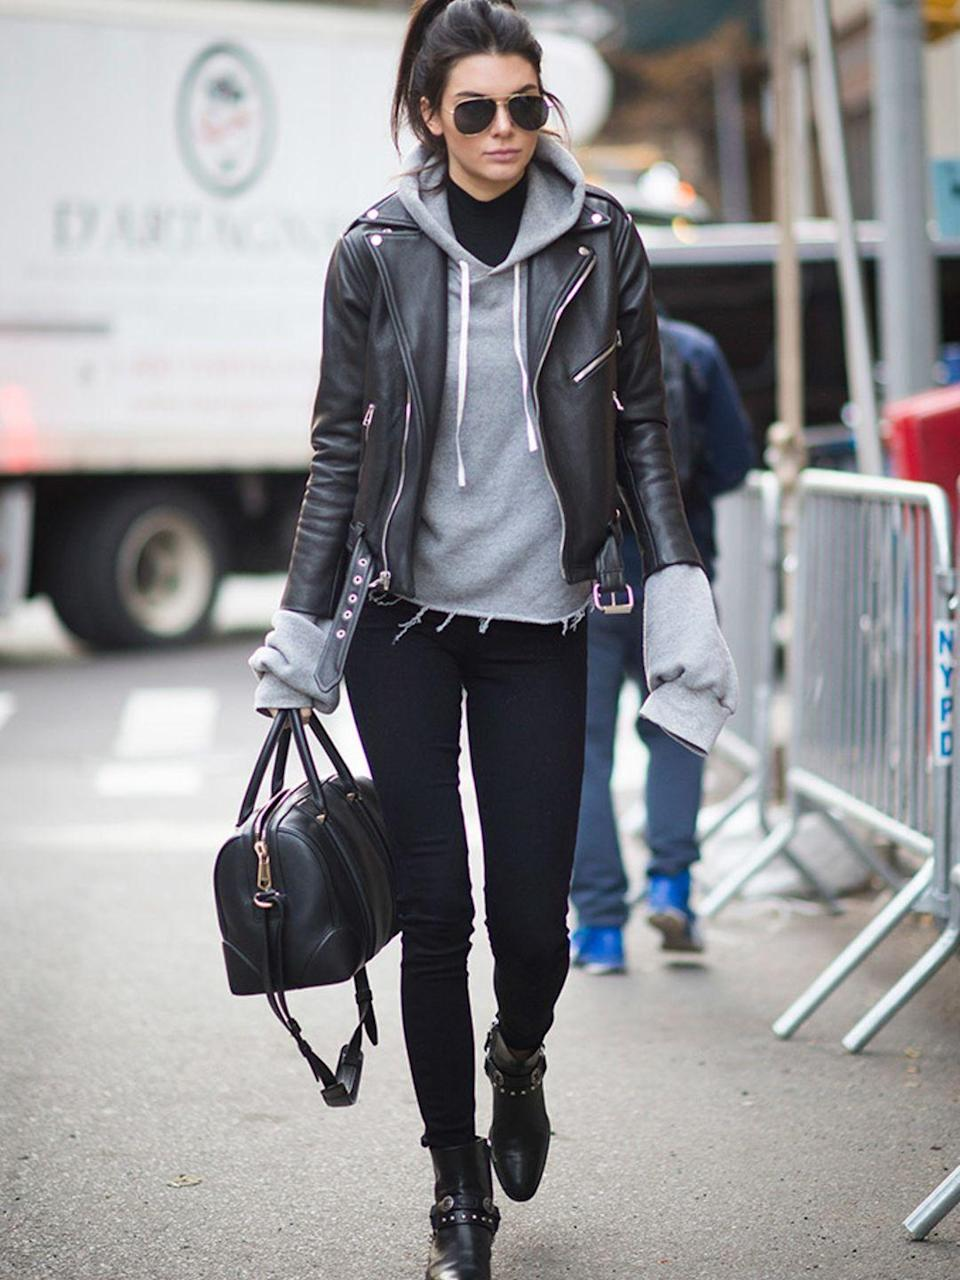 <p>Kendall Jenner wearing Paige and spotted before the rehearsal of the Victoria's Secret Fashion Show in New York, November 2015.</p>